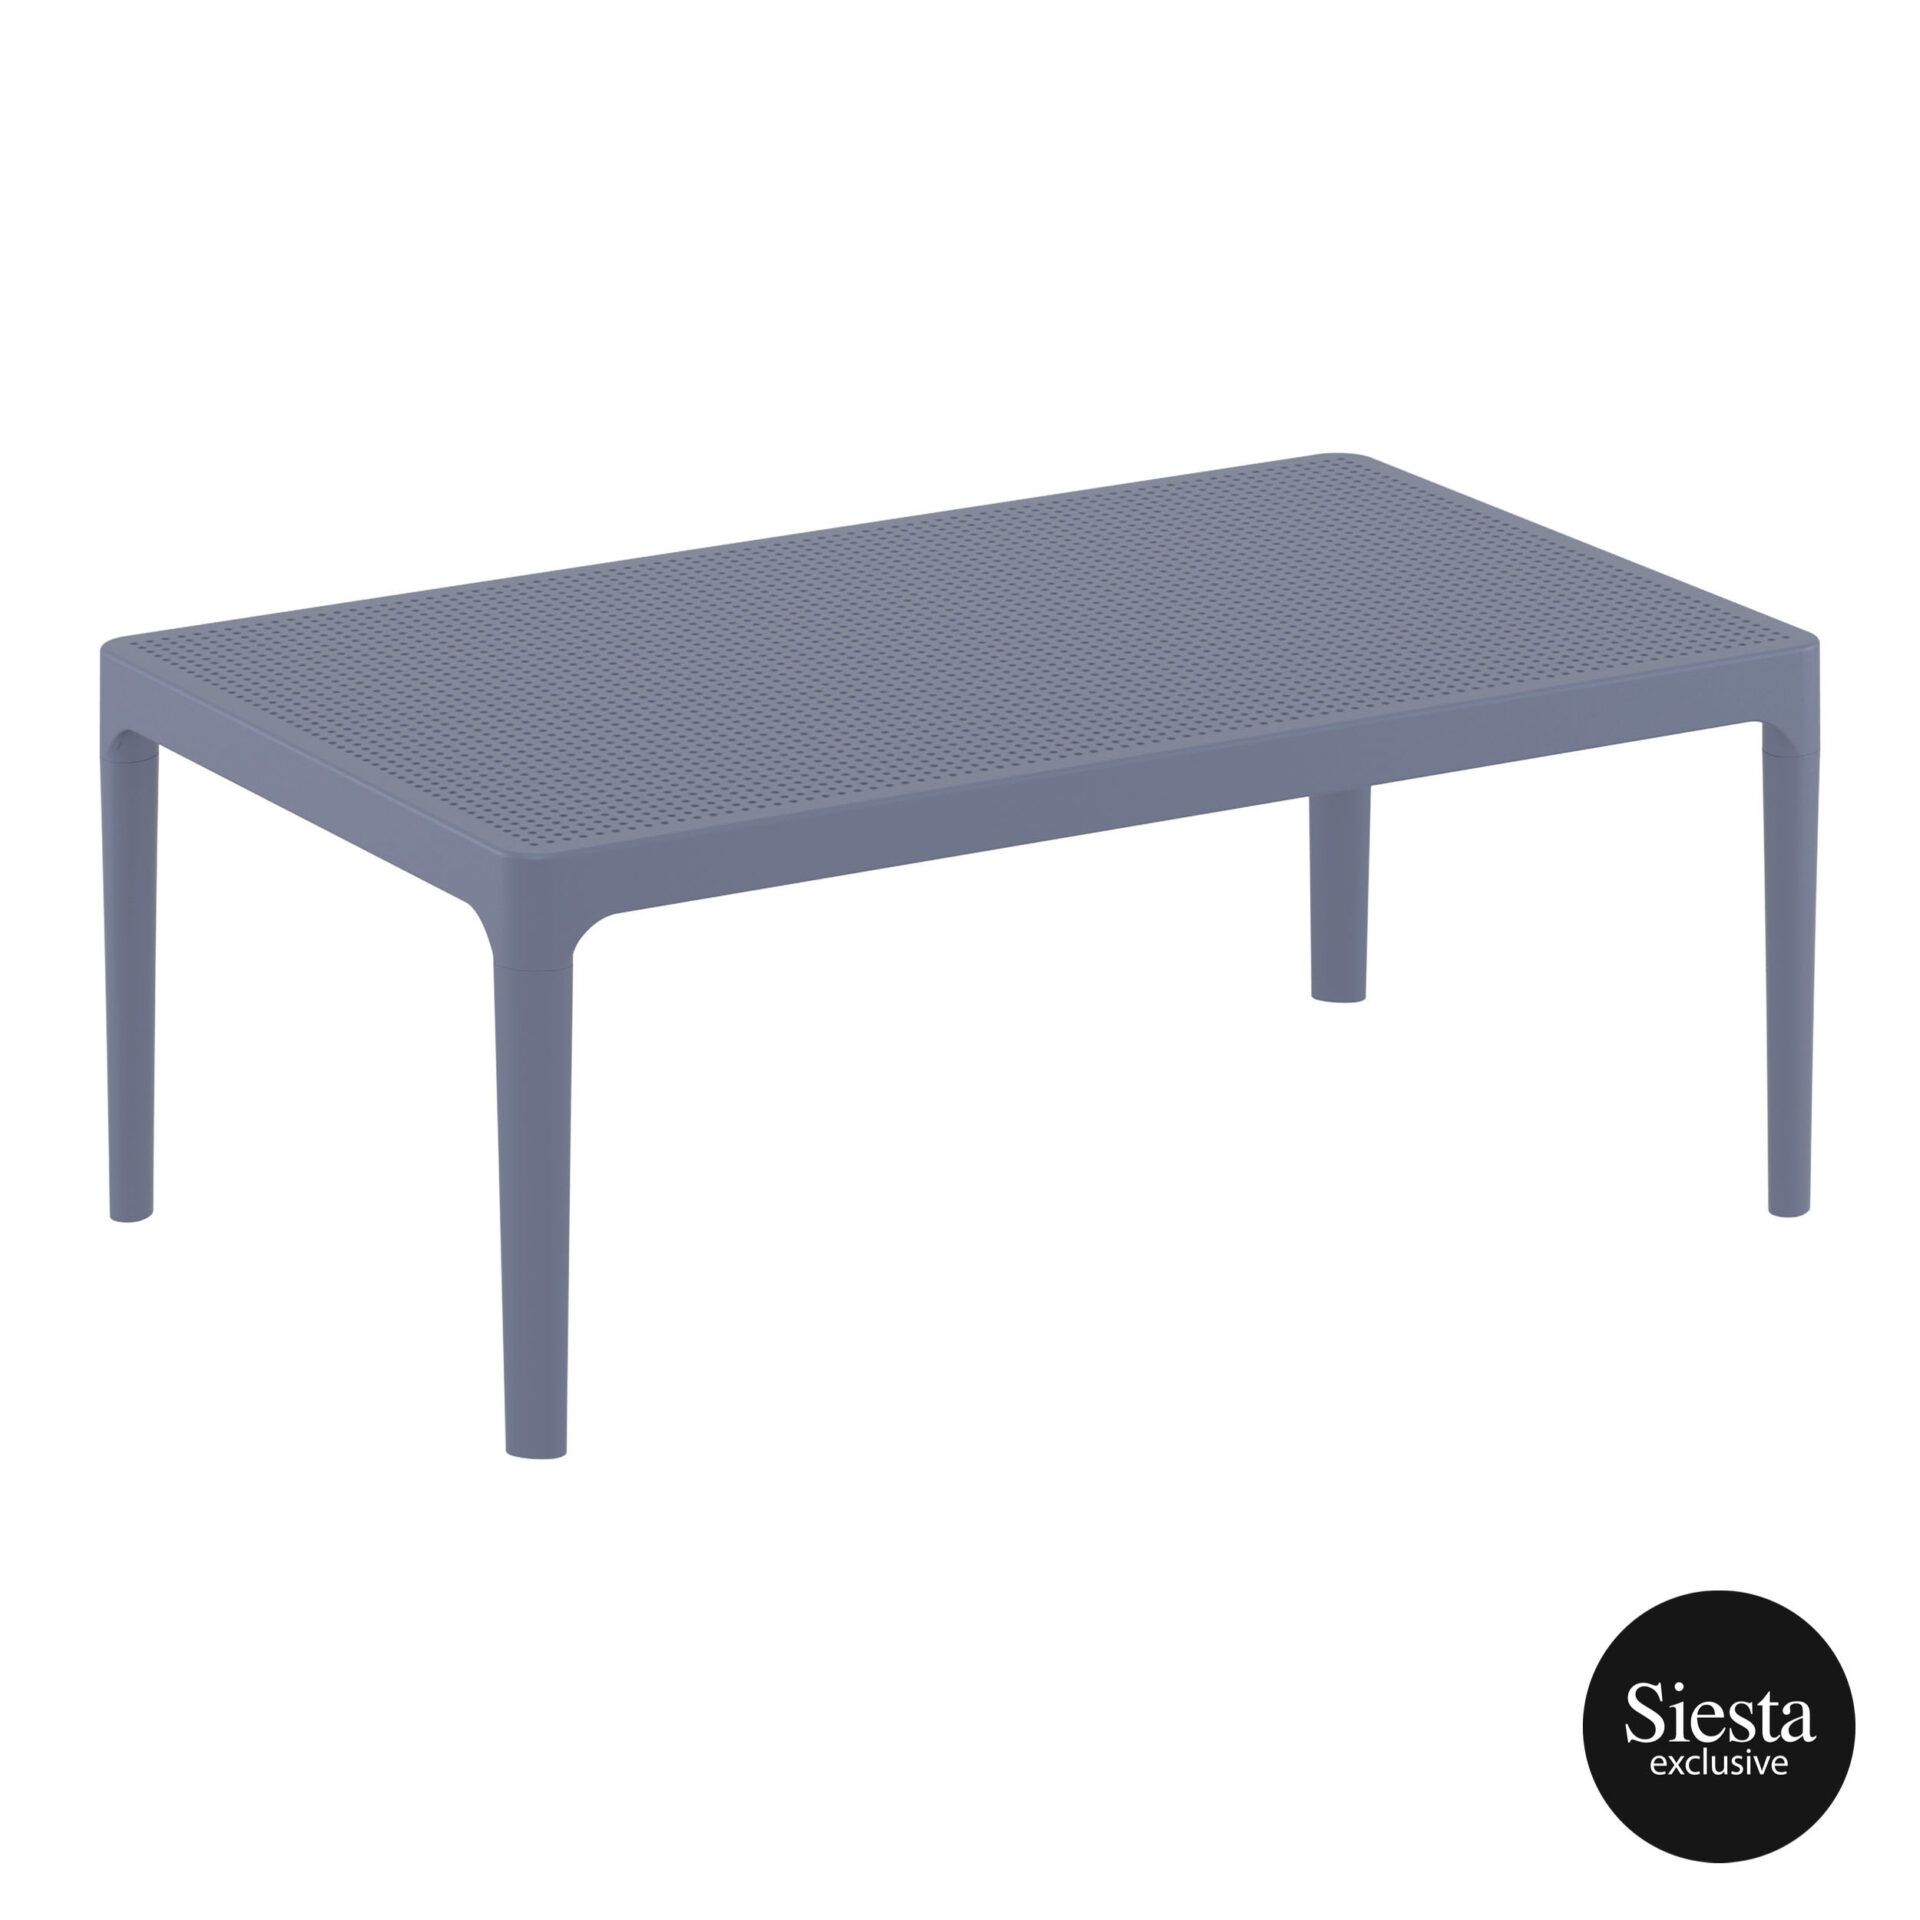 Polypropylene Outdoor Sky Lounge Coffee Table darkgrey front side